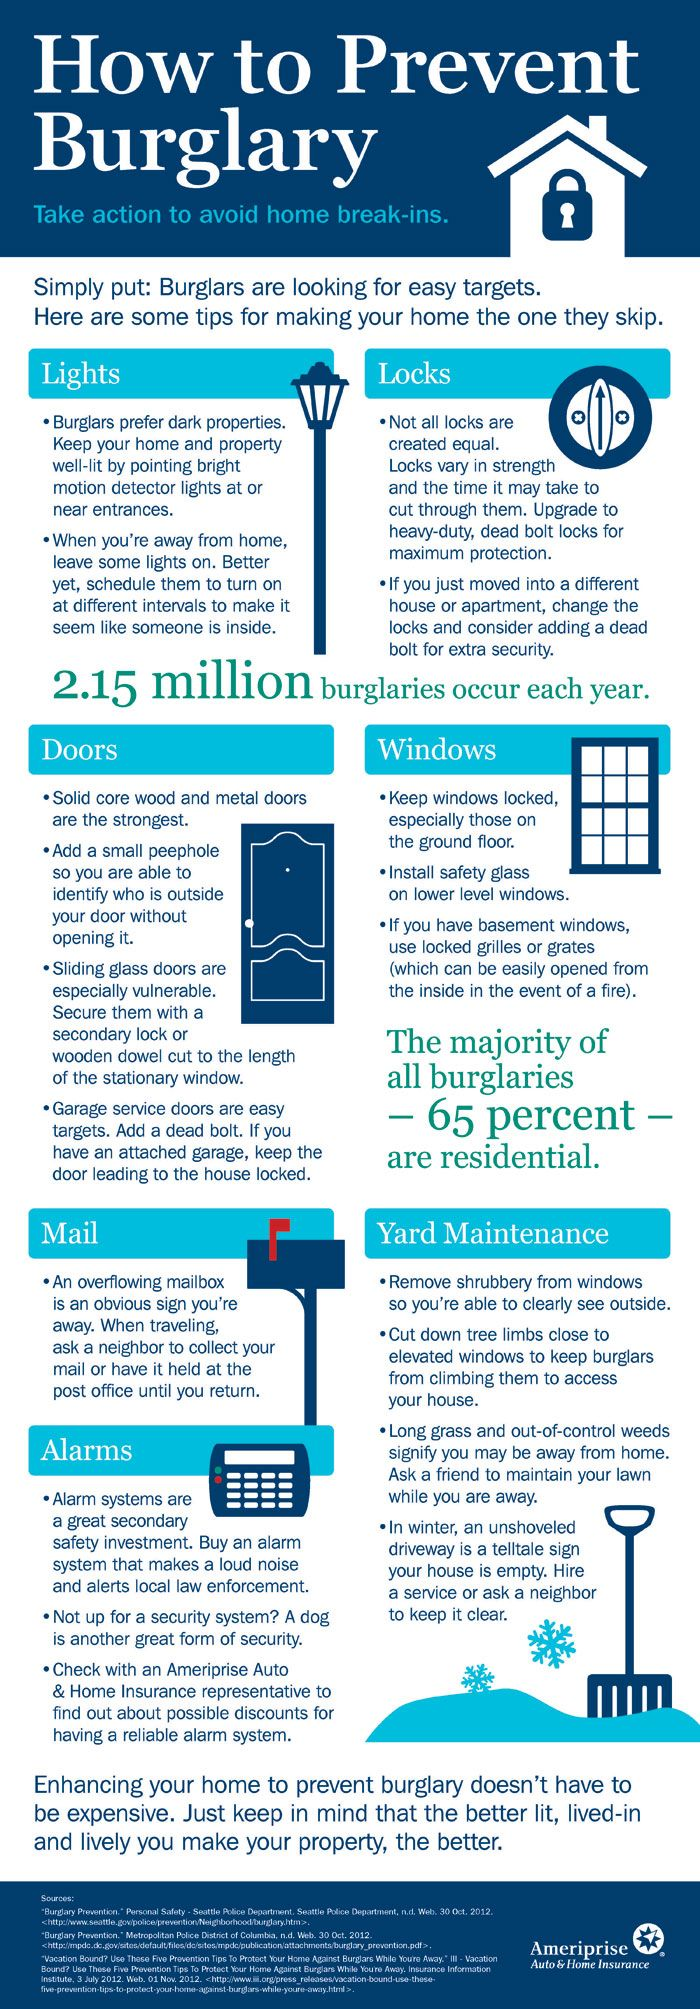 How to Prevent Home #Burglary (infographic)  http://www.homecontrols.com/Main-Category/Home-Security